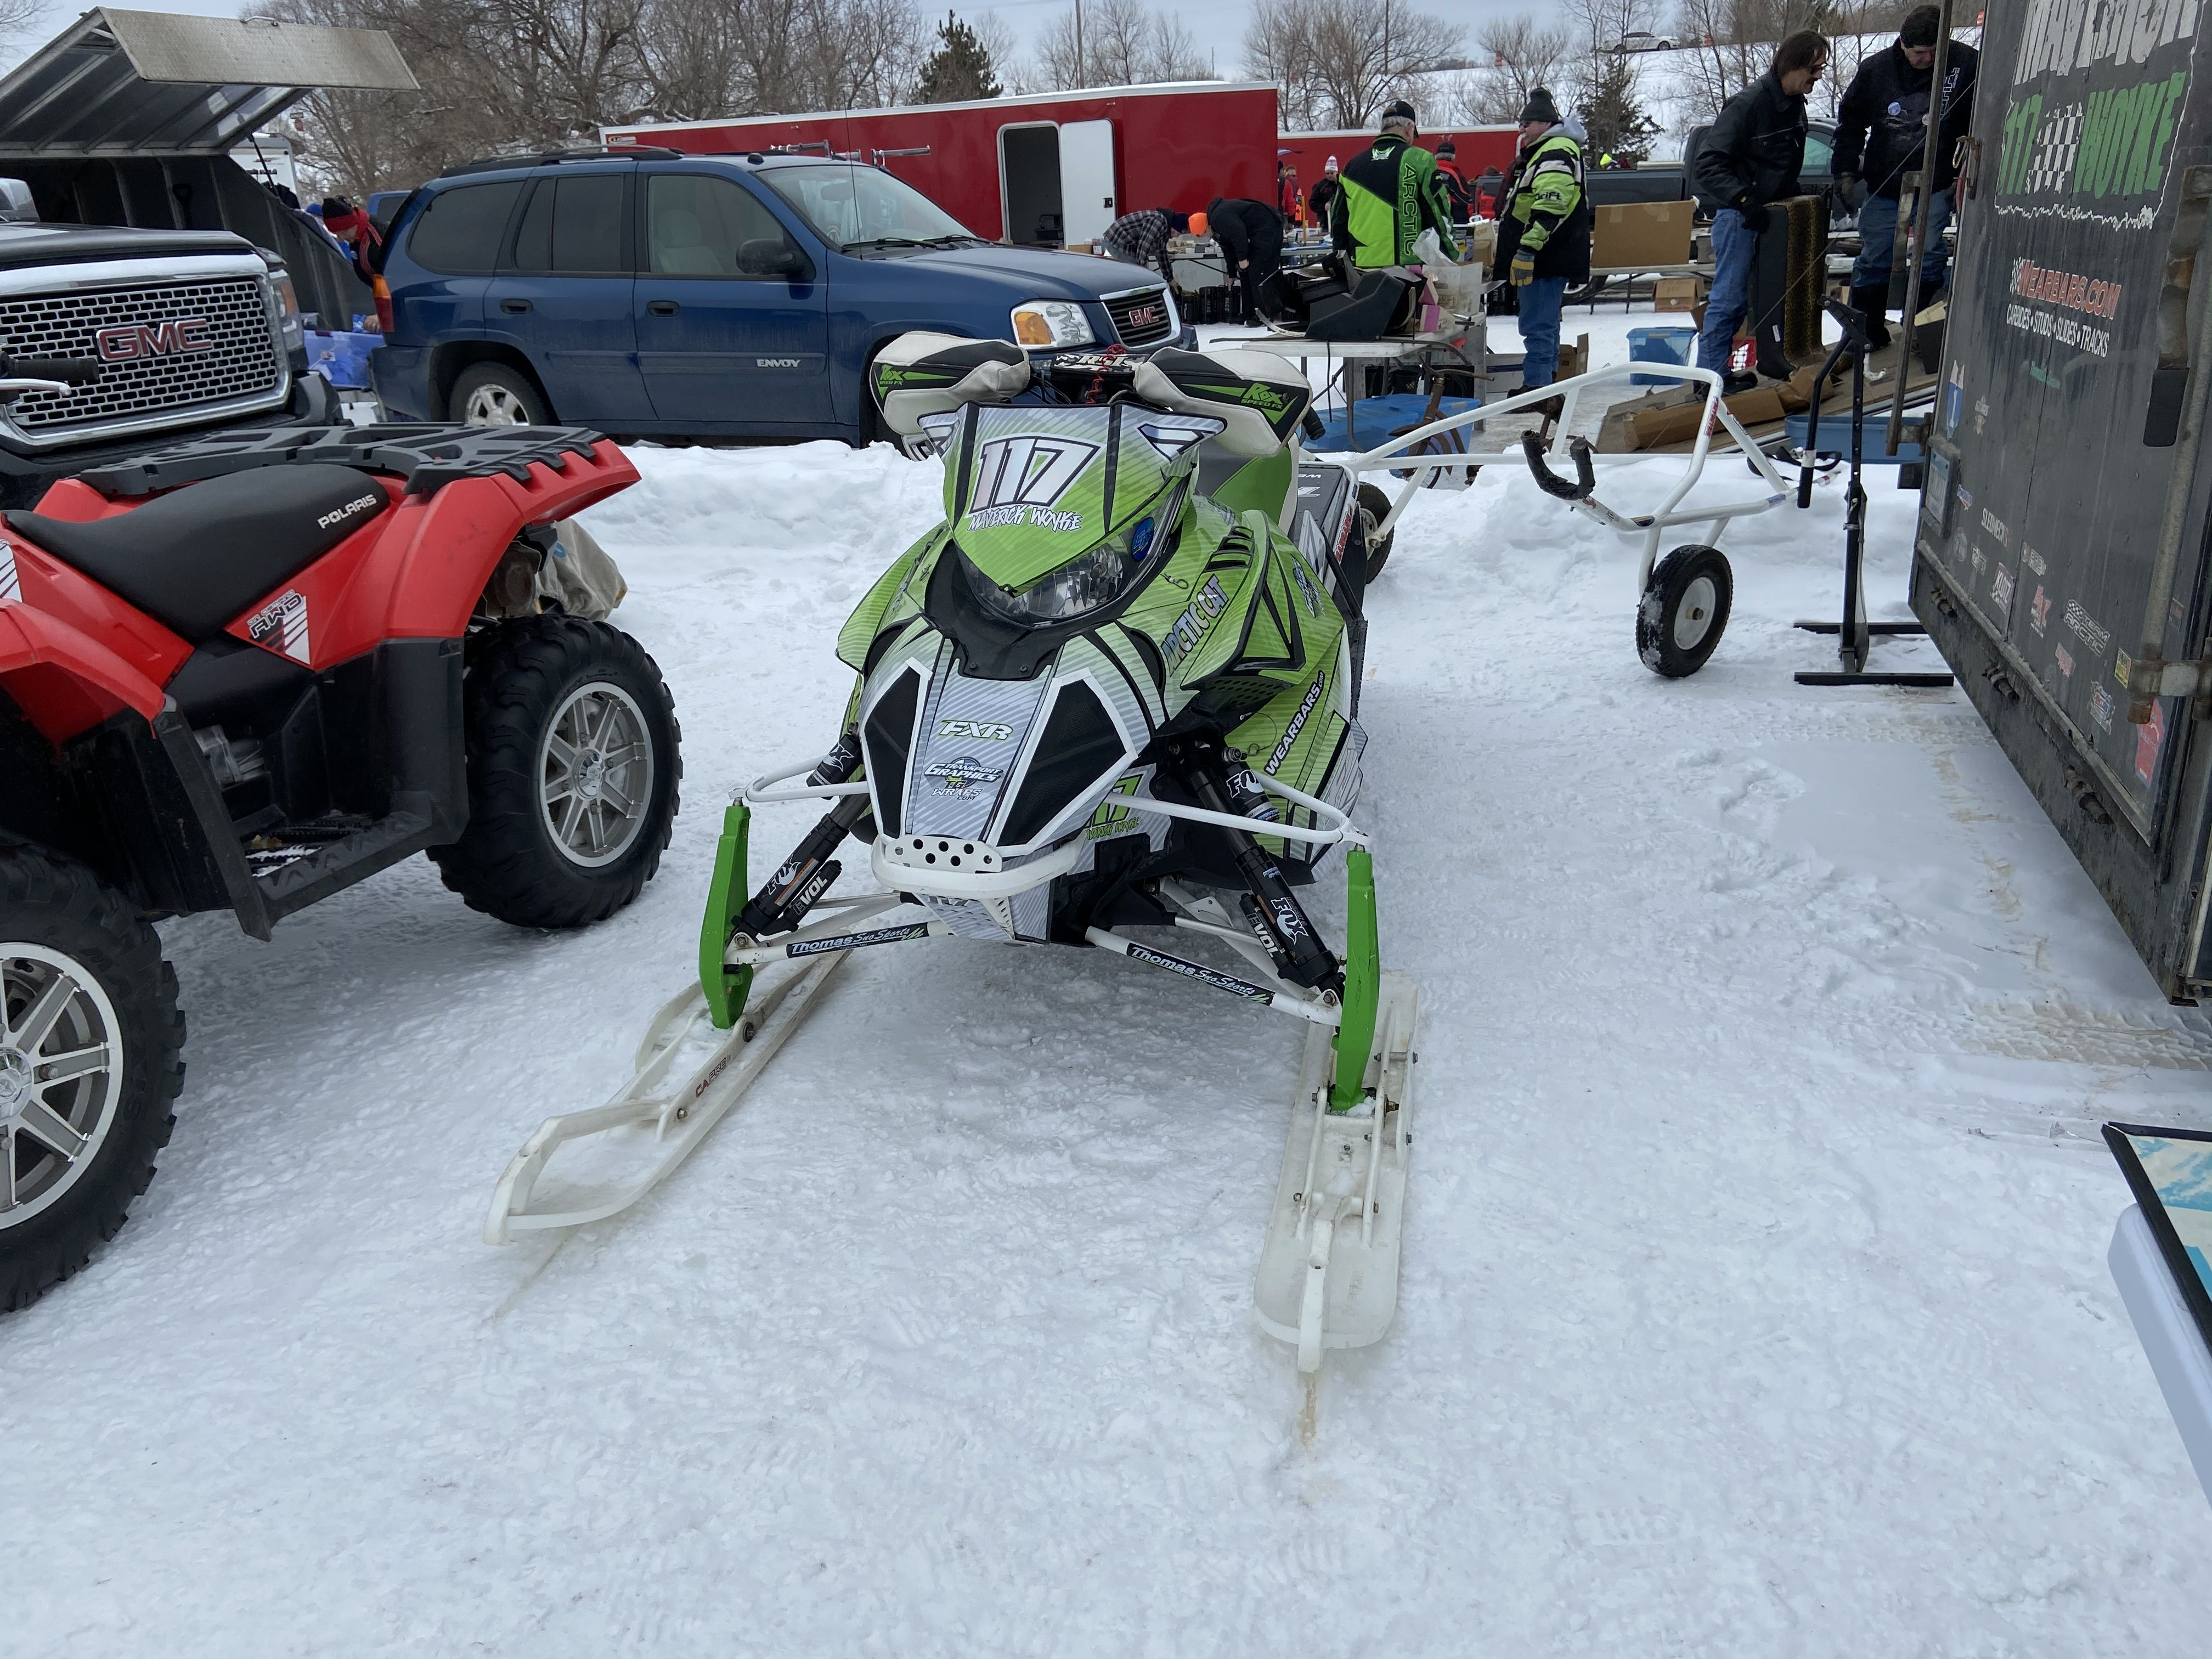 Pin by Shelby Raida on Arctic cat snowmobile in 2020